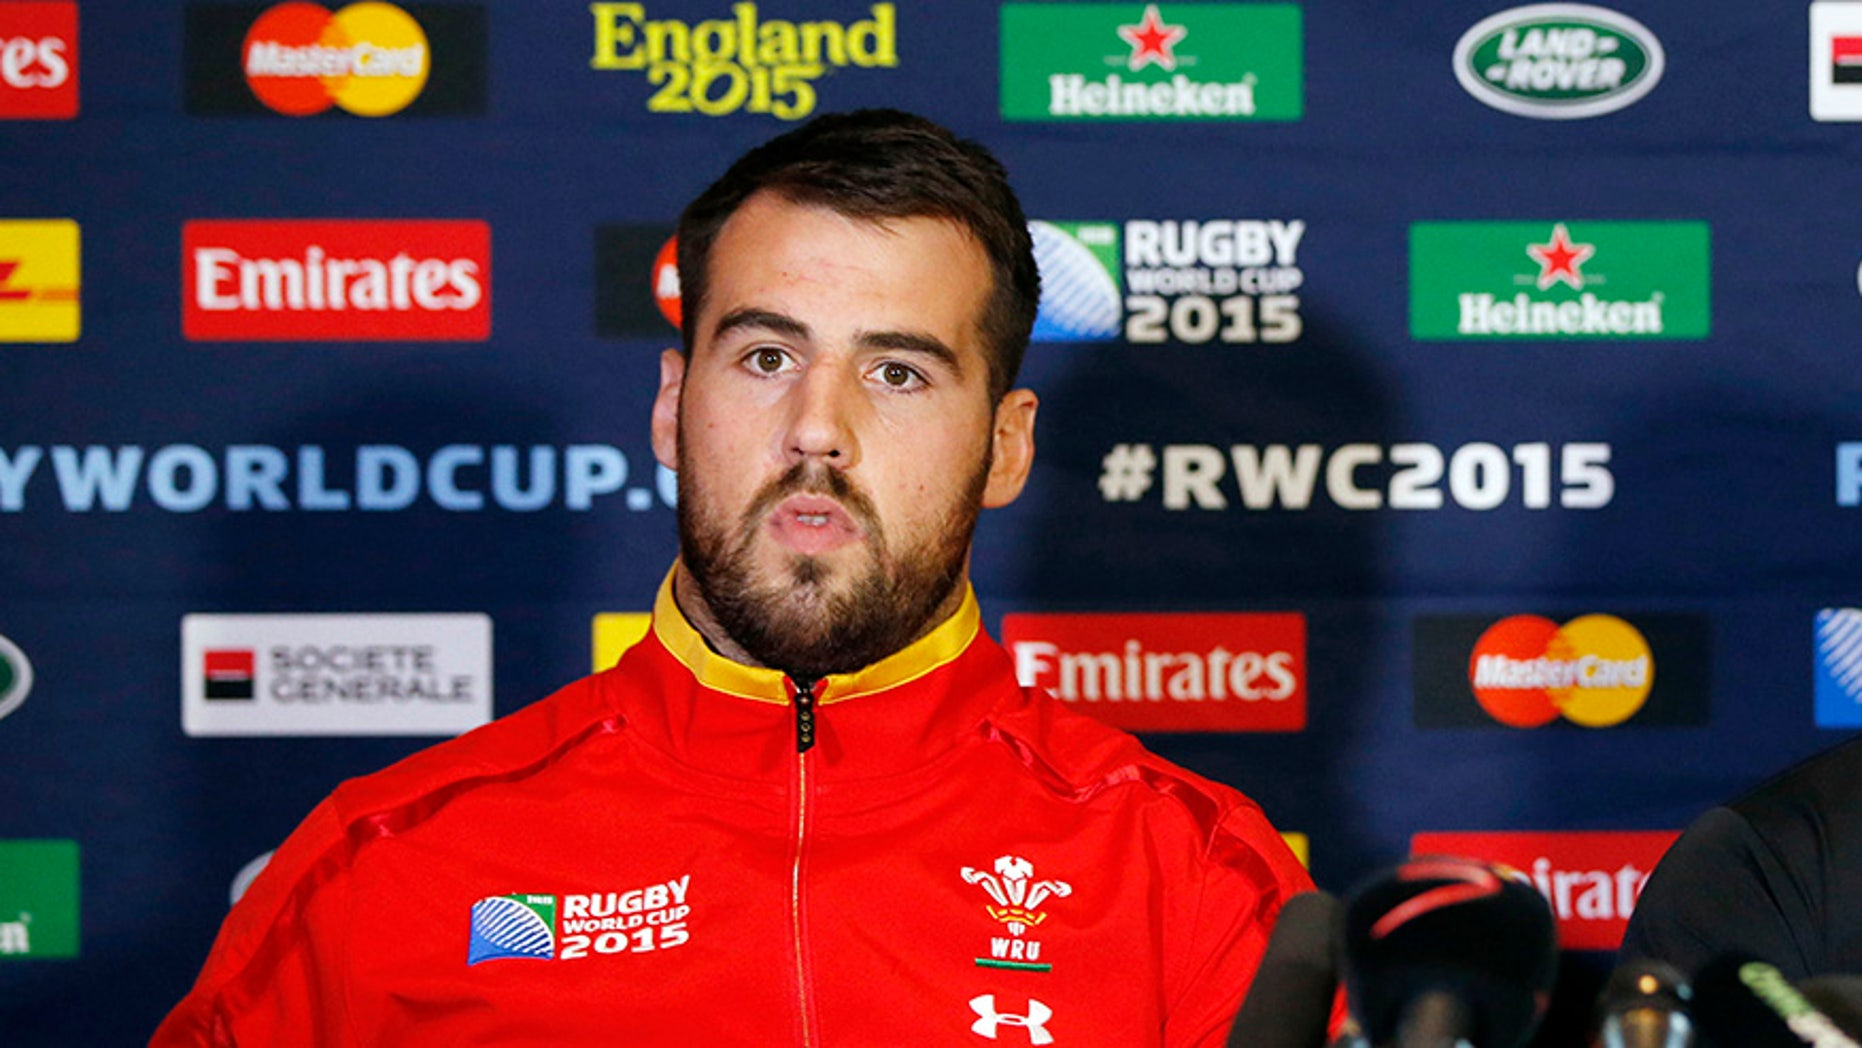 Welsh rugby player Scott Baldwin was forced to miss a match in South Africa after he was bitten by a lion.